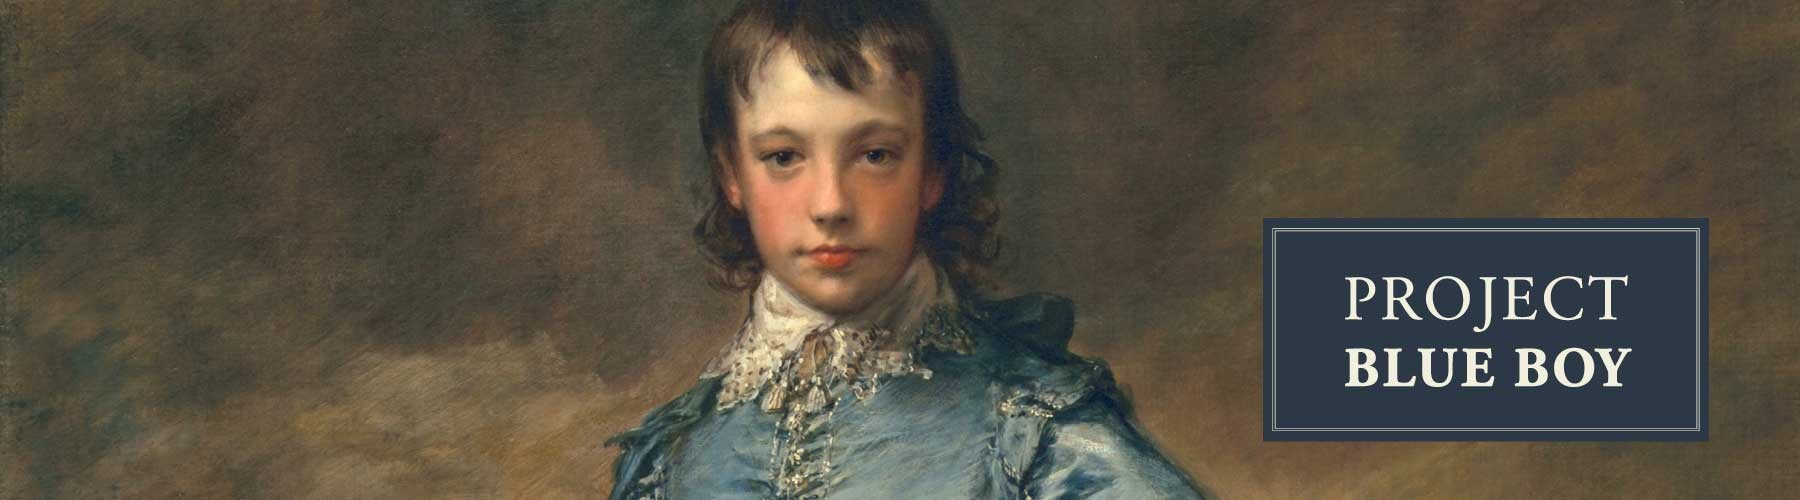 Cropped image of The Blue Boy painting